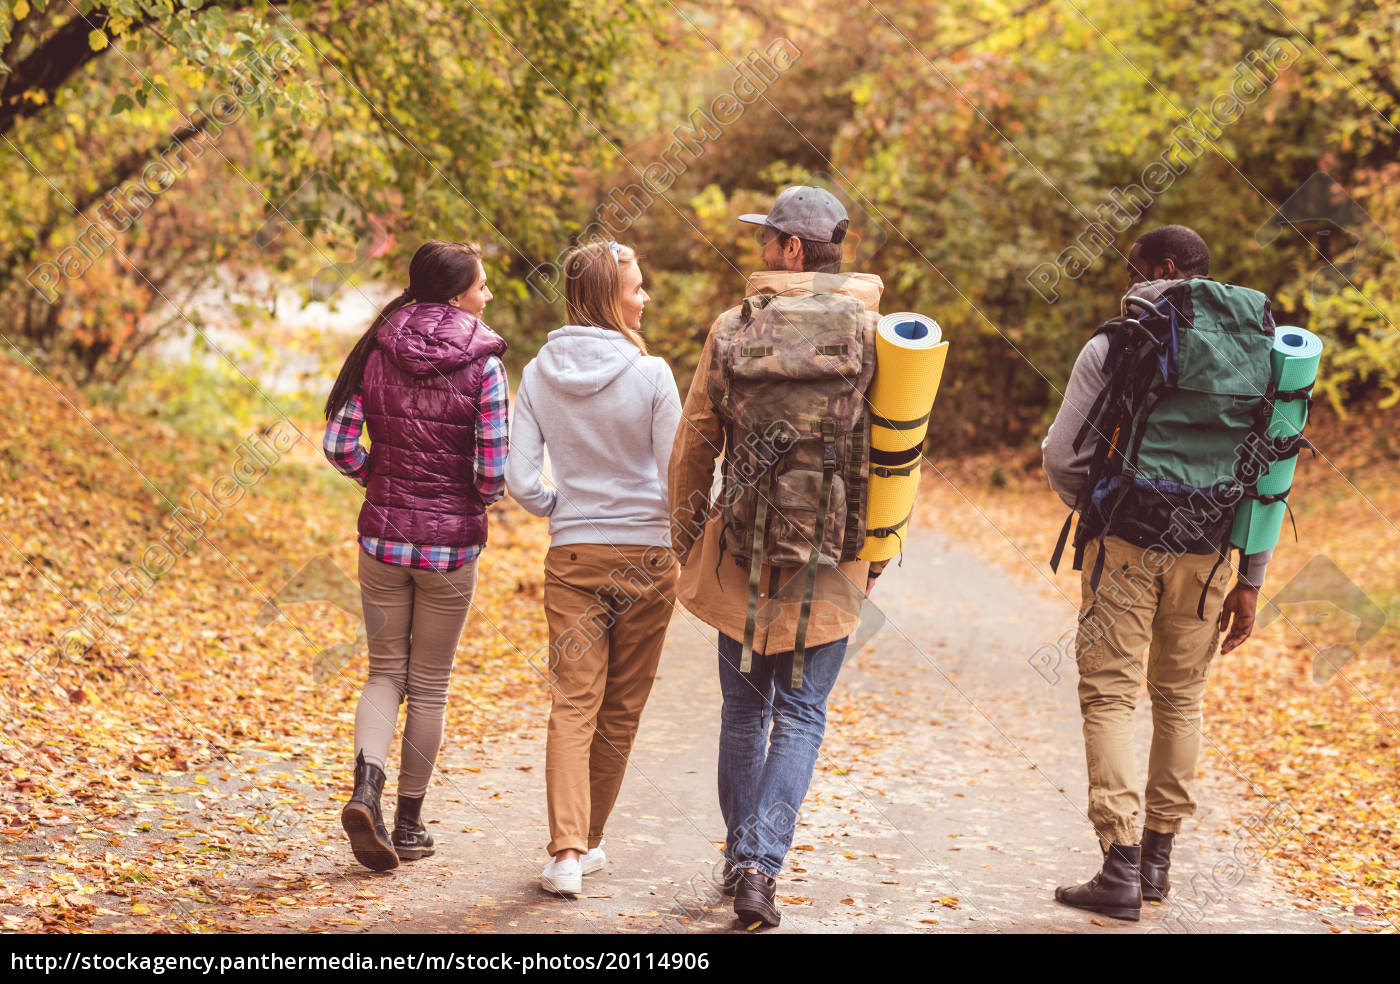 young, backpackers, in, autumn, forest - 20114906